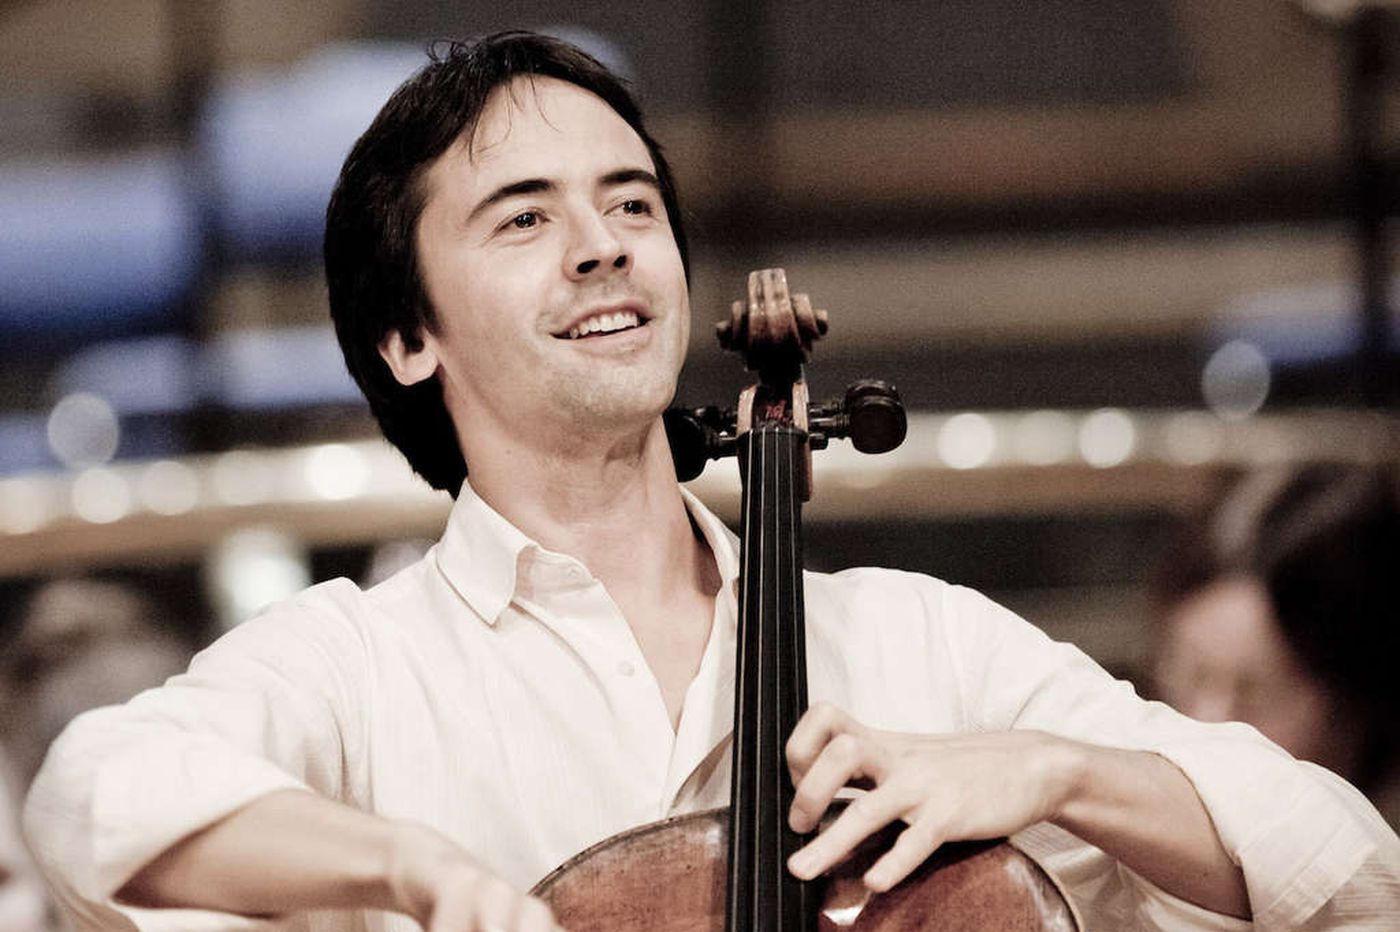 French cellist shines in orchestra appearance